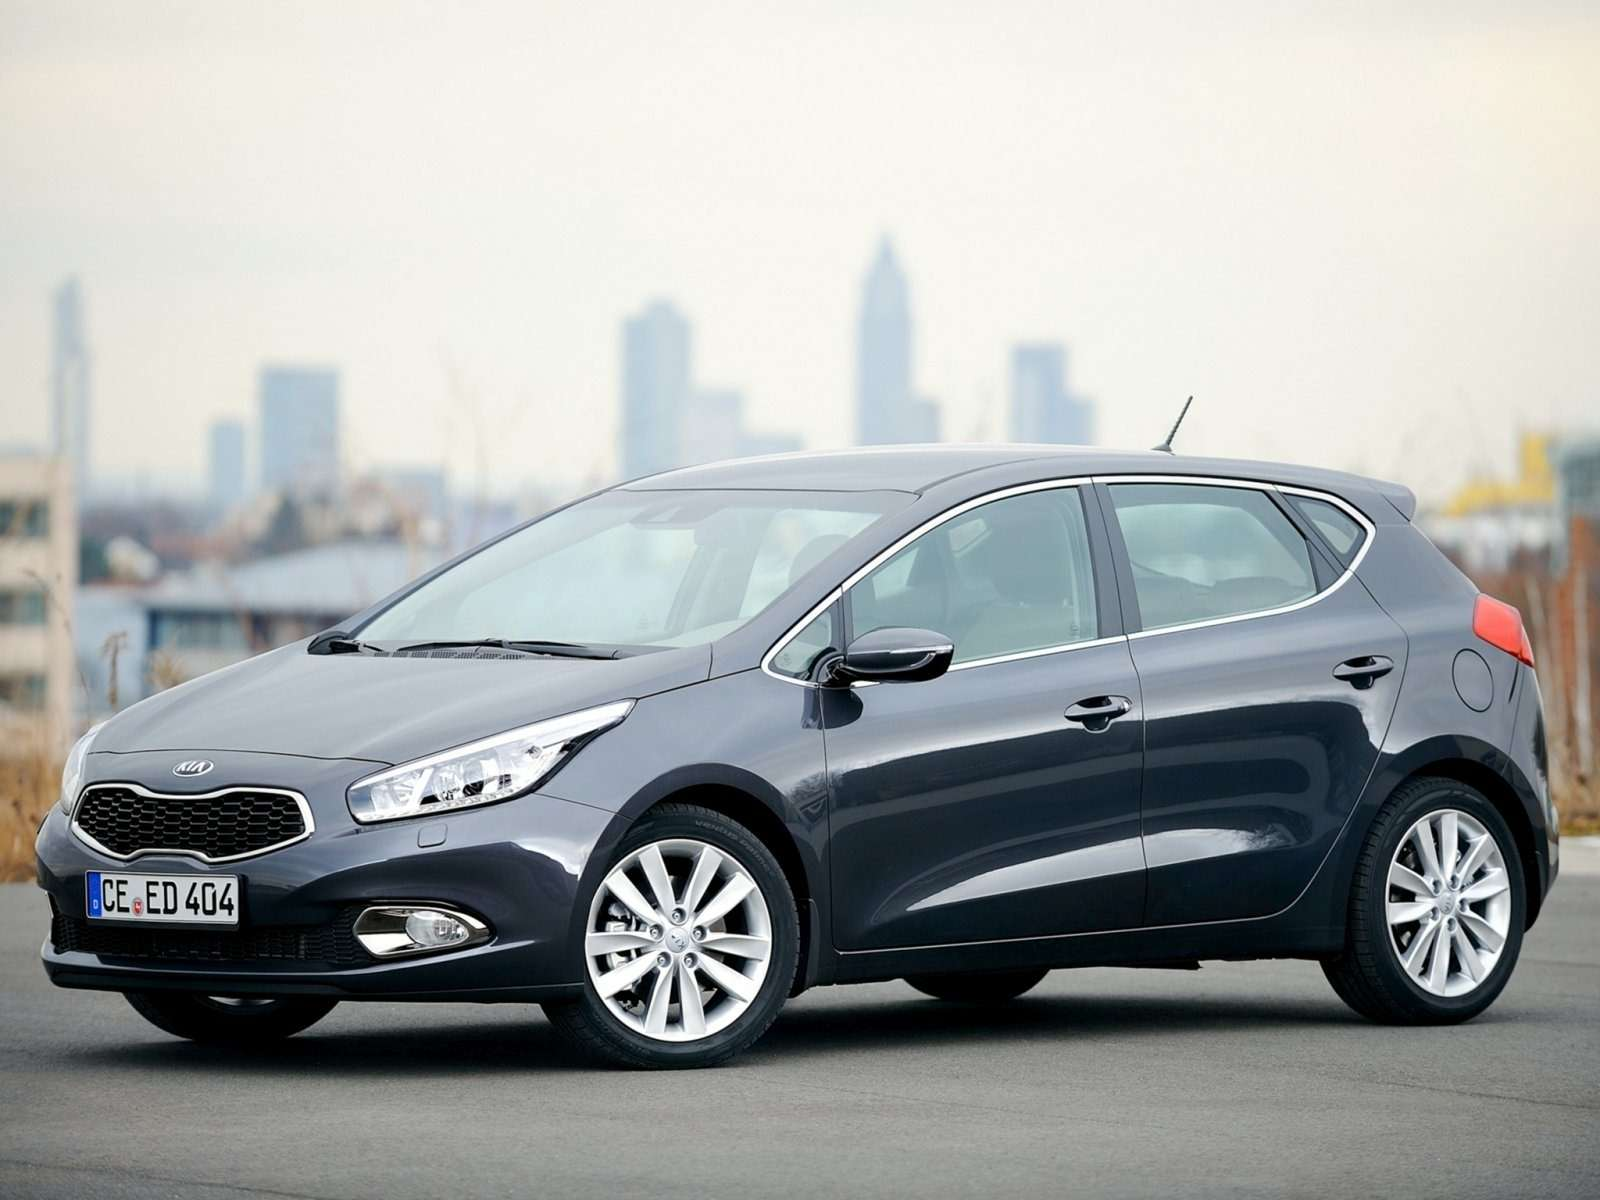 KIA_Ceed_Hatchback 5 door_2012